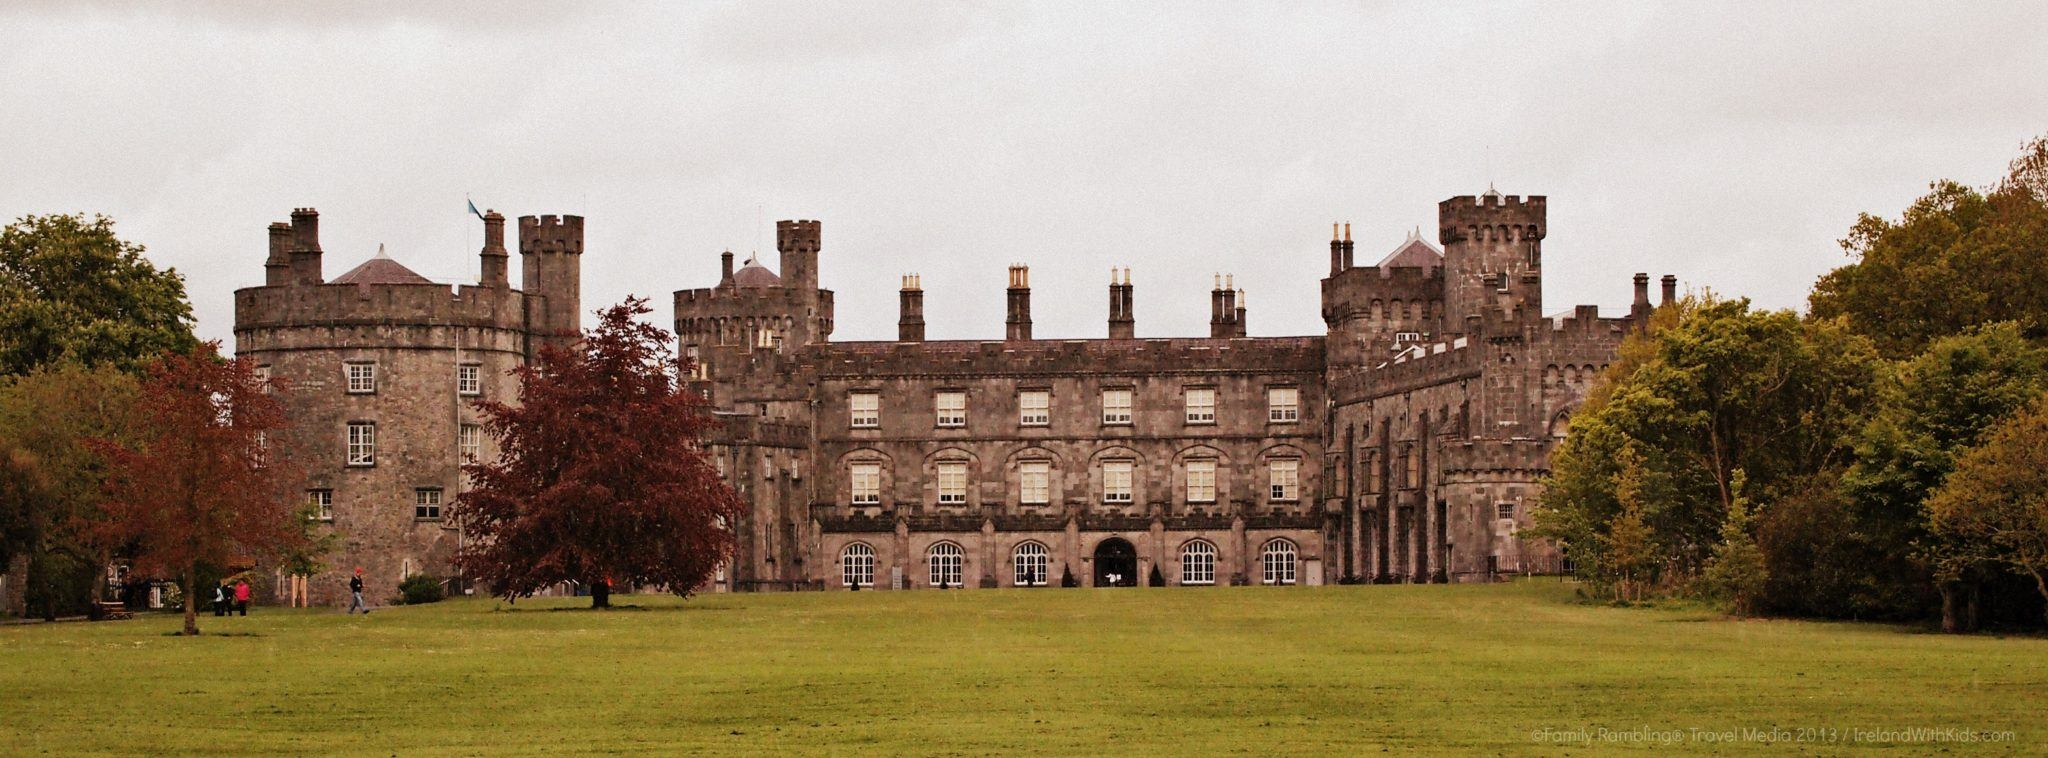 10 of the Best Castles to Visit in Ireland